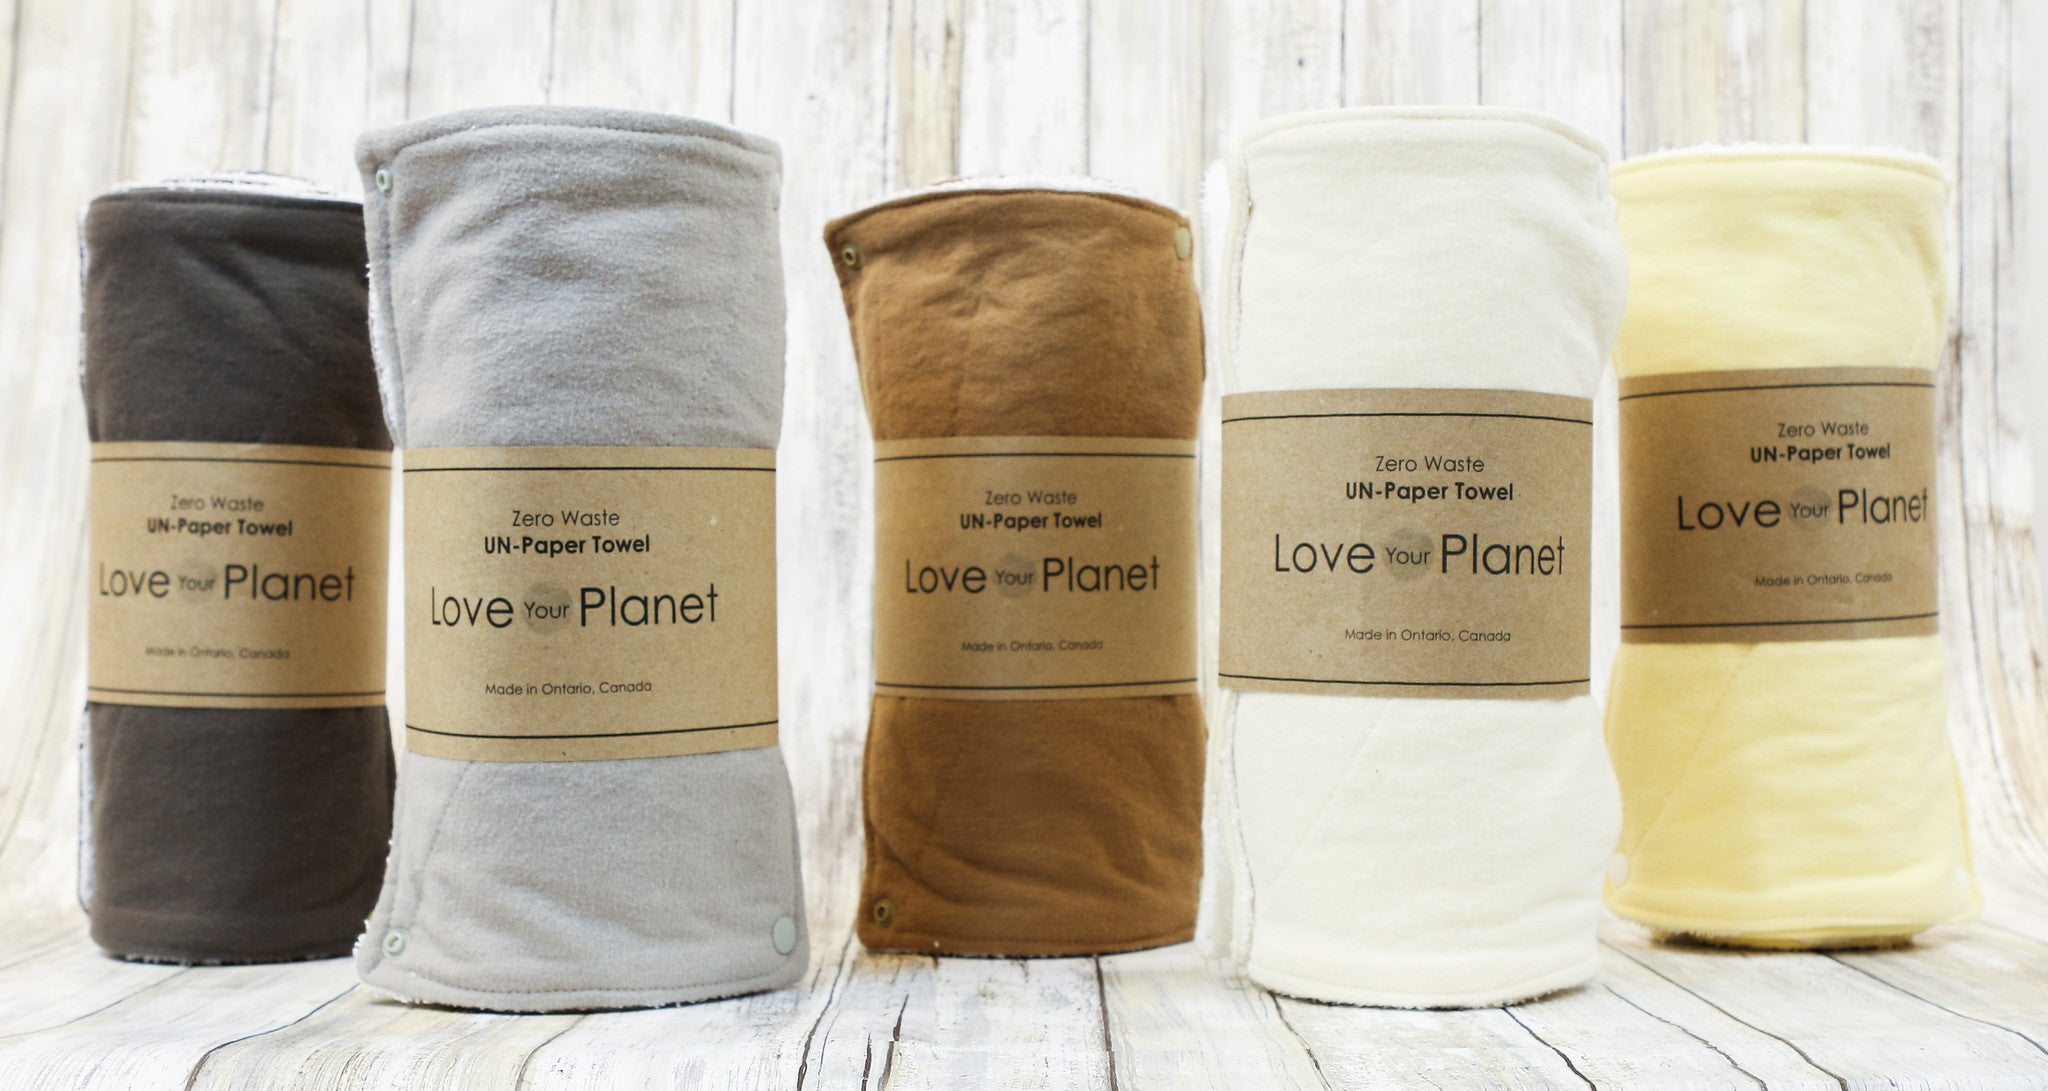 The Unpaper Towel - Zero Waste, Eco Friendly & Handmade